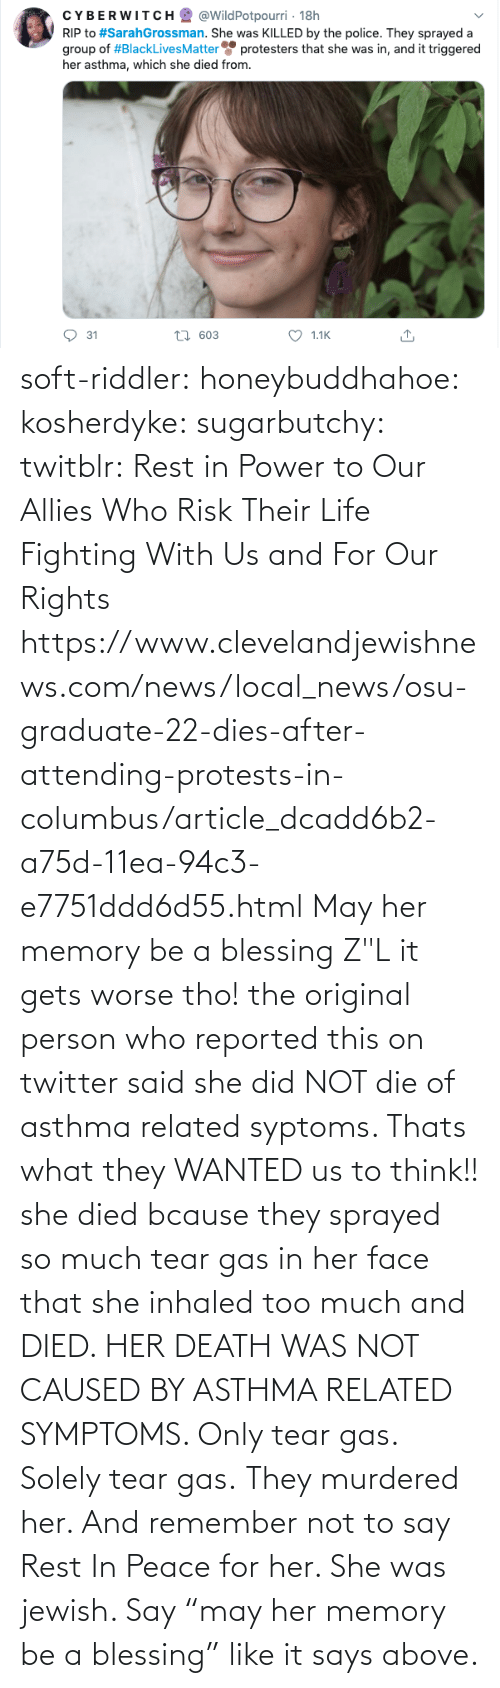 "Too Much: soft-riddler:  honeybuddhahoe:  kosherdyke:  sugarbutchy:  twitblr: Rest in Power to Our Allies Who Risk Their Life Fighting With Us and For Our Rights https://www.clevelandjewishnews.com/news/local_news/osu-graduate-22-dies-after-attending-protests-in-columbus/article_dcadd6b2-a75d-11ea-94c3-e7751ddd6d55.html    May her memory be a blessing Z""L  it gets worse tho! the original person who reported this on twitter said she did NOT die of asthma related syptoms. Thats what they WANTED us to think!! she died bcause they sprayed so much tear gas in her face that she inhaled too much and DIED. HER DEATH WAS NOT CAUSED BY ASTHMA RELATED SYMPTOMS. Only tear gas. Solely tear gas. They murdered her.     And remember not to say Rest In Peace for her. She was jewish. Say ""may her memory be a blessing"" like it says above."